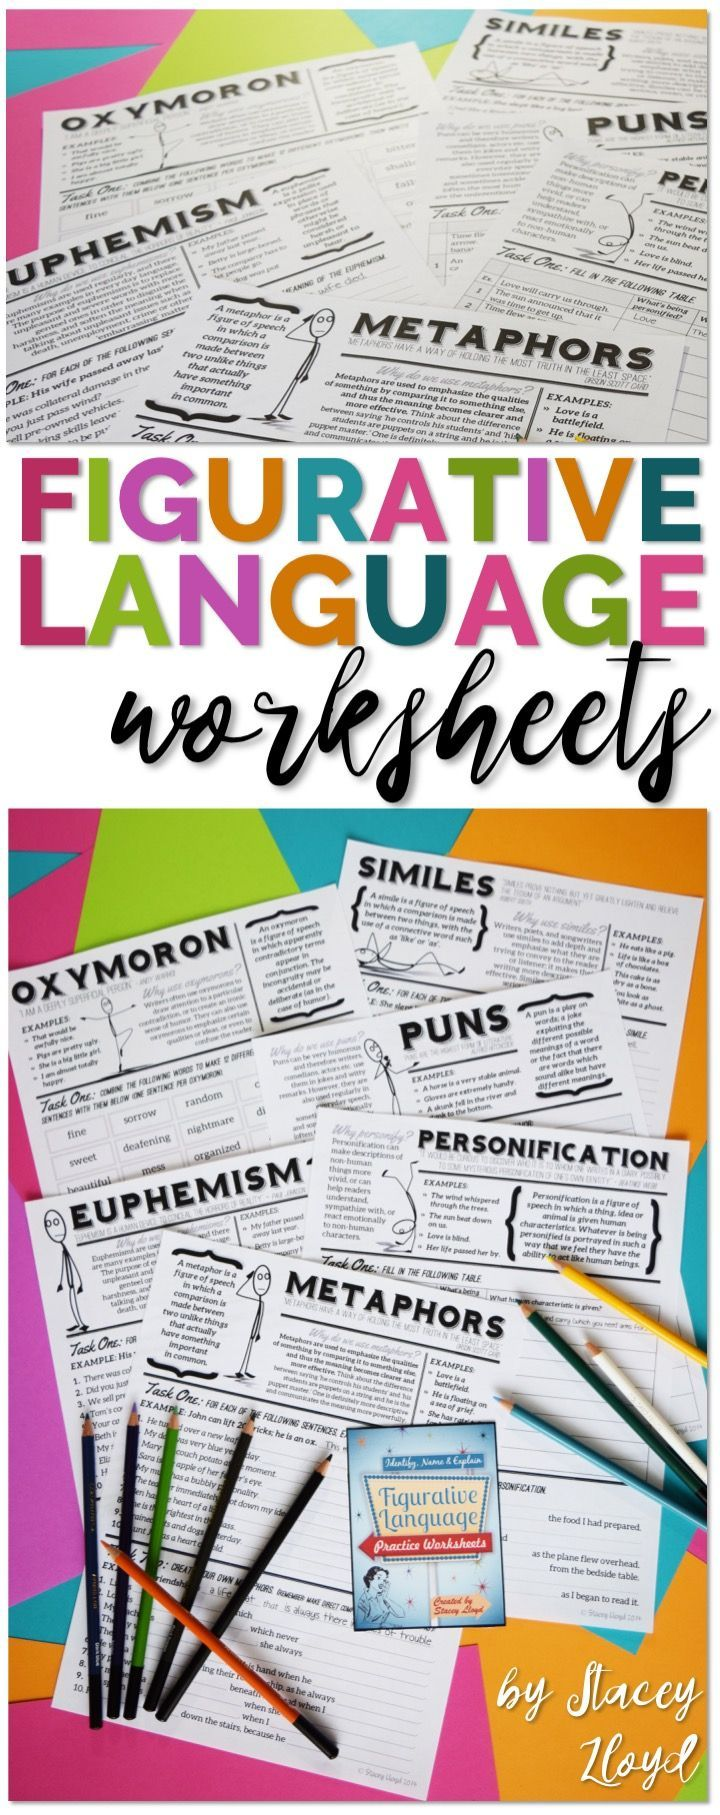 Attractive and engaging figurative language worksheets, with definitions, examples and practice exercises.